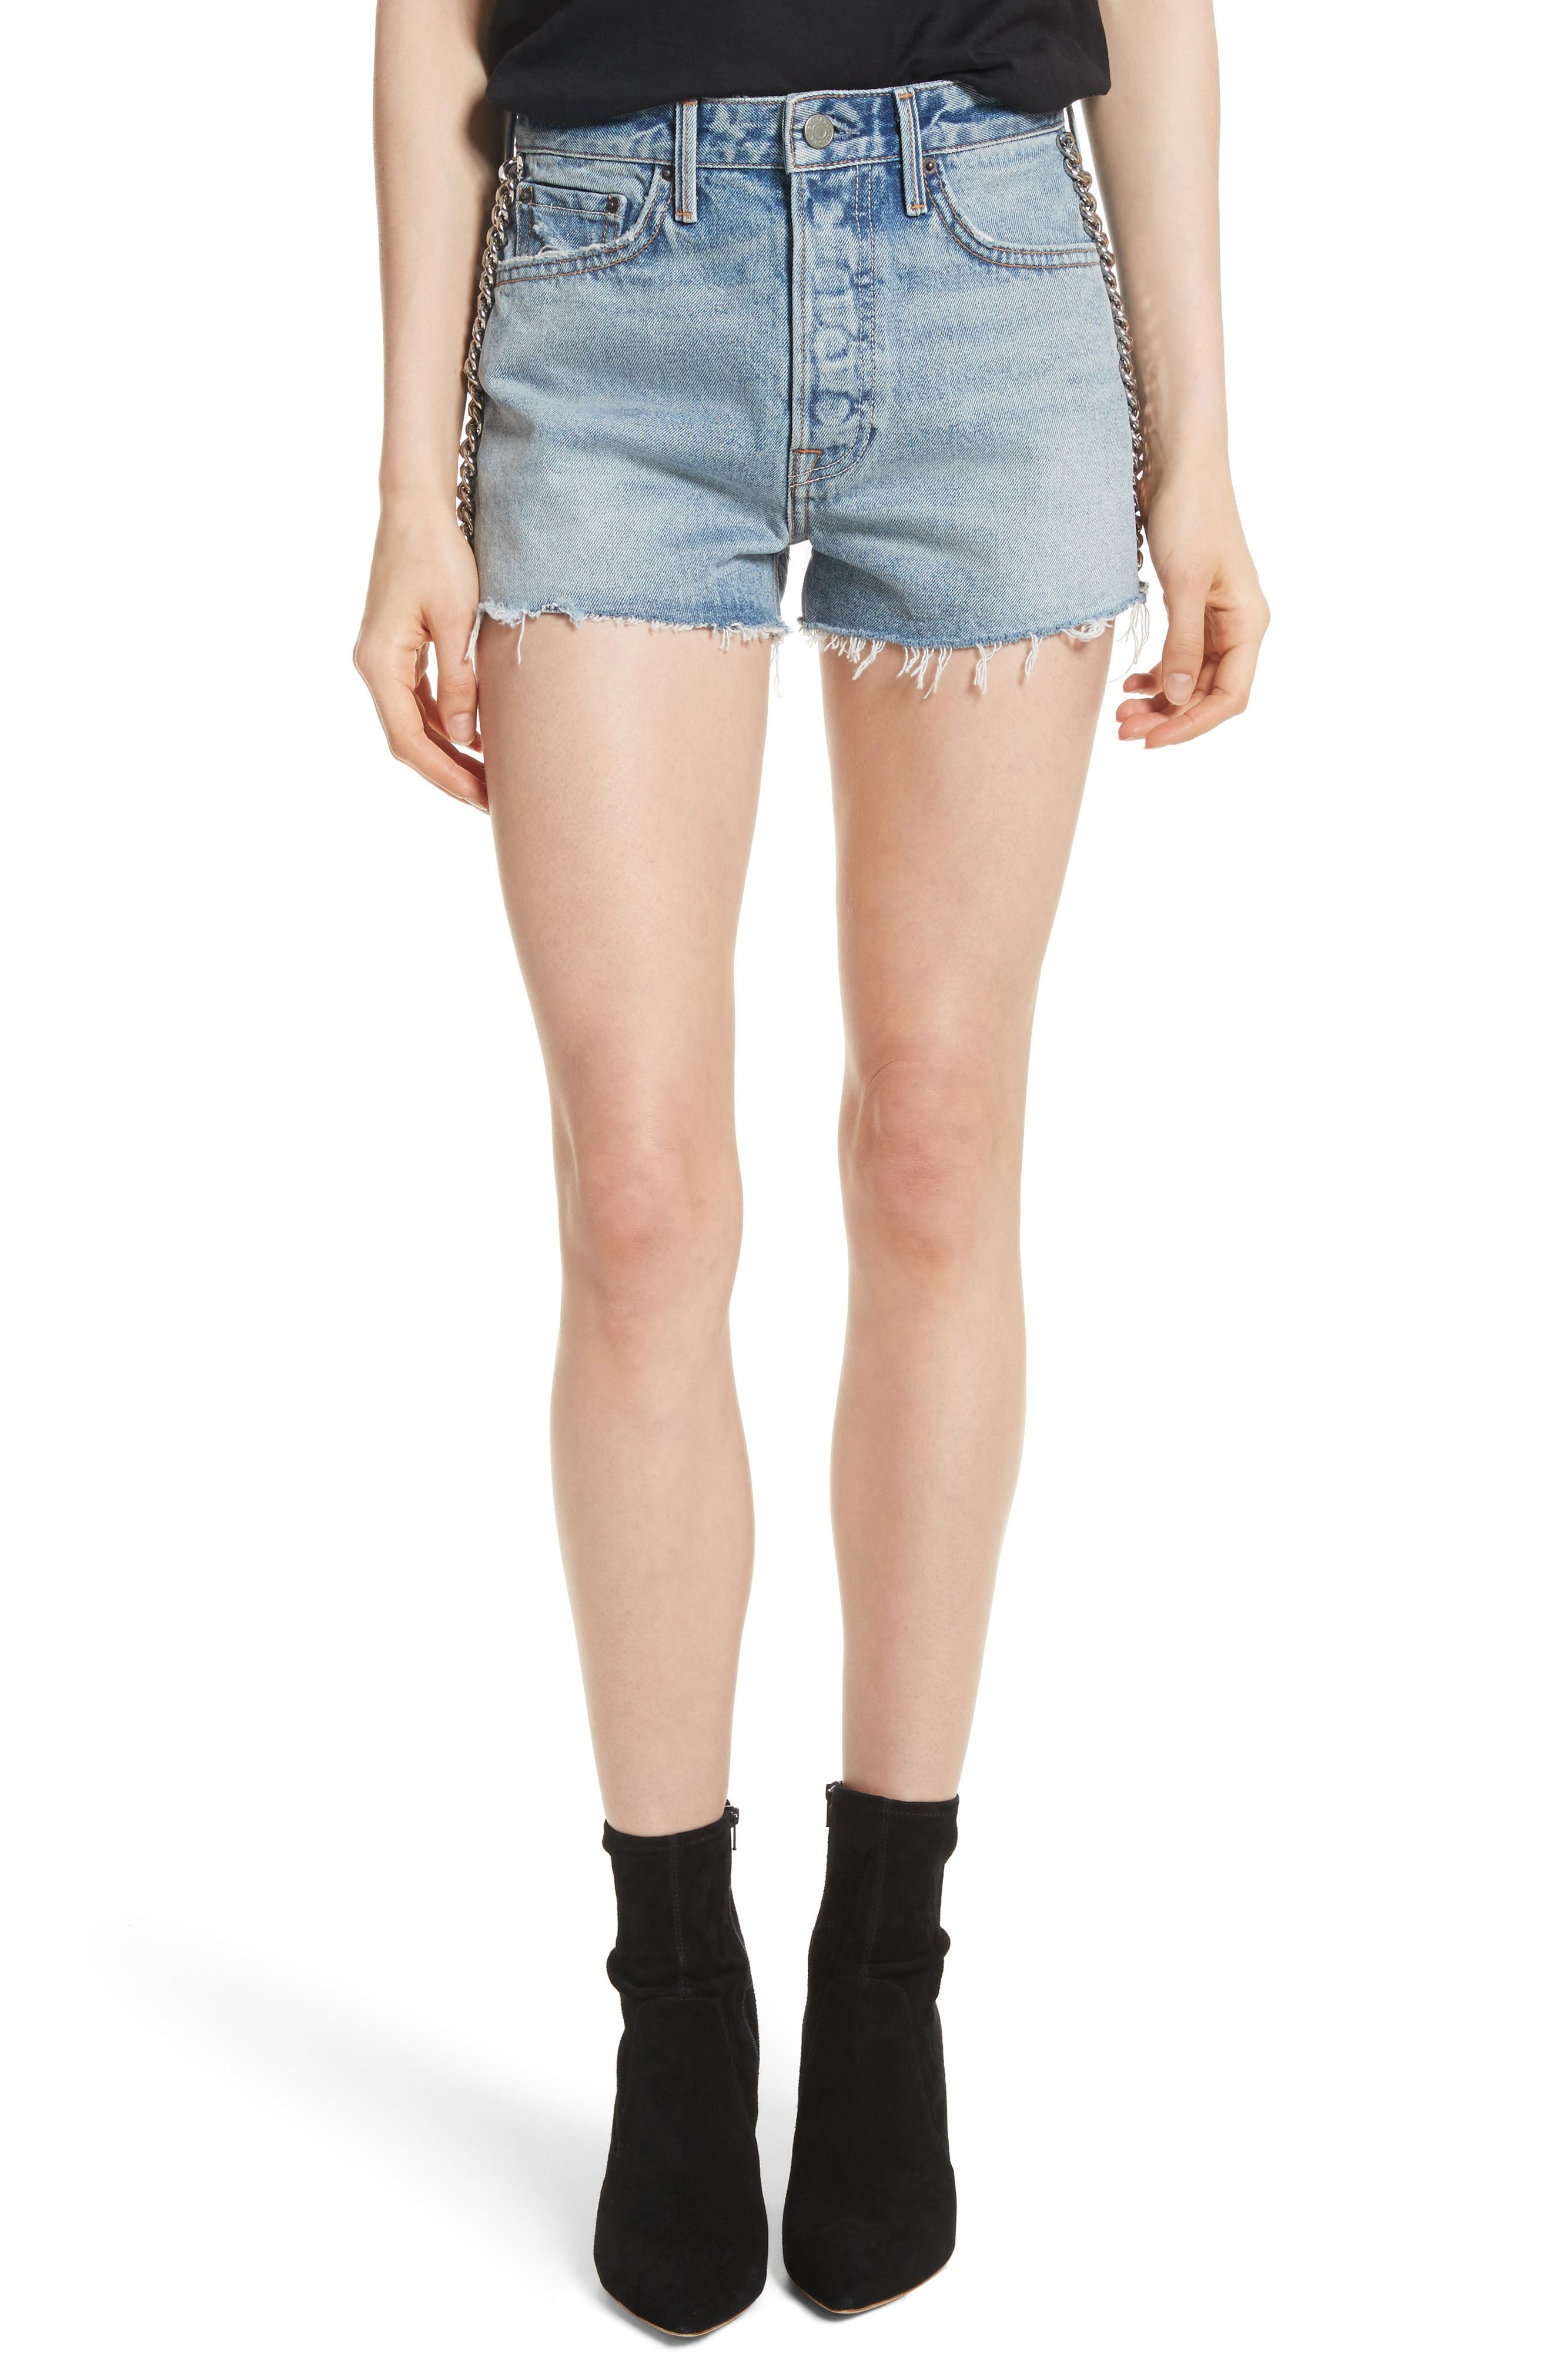 Cindy Rigid High Waist Denim Shorts,                         Main,                         color, Cast Iron